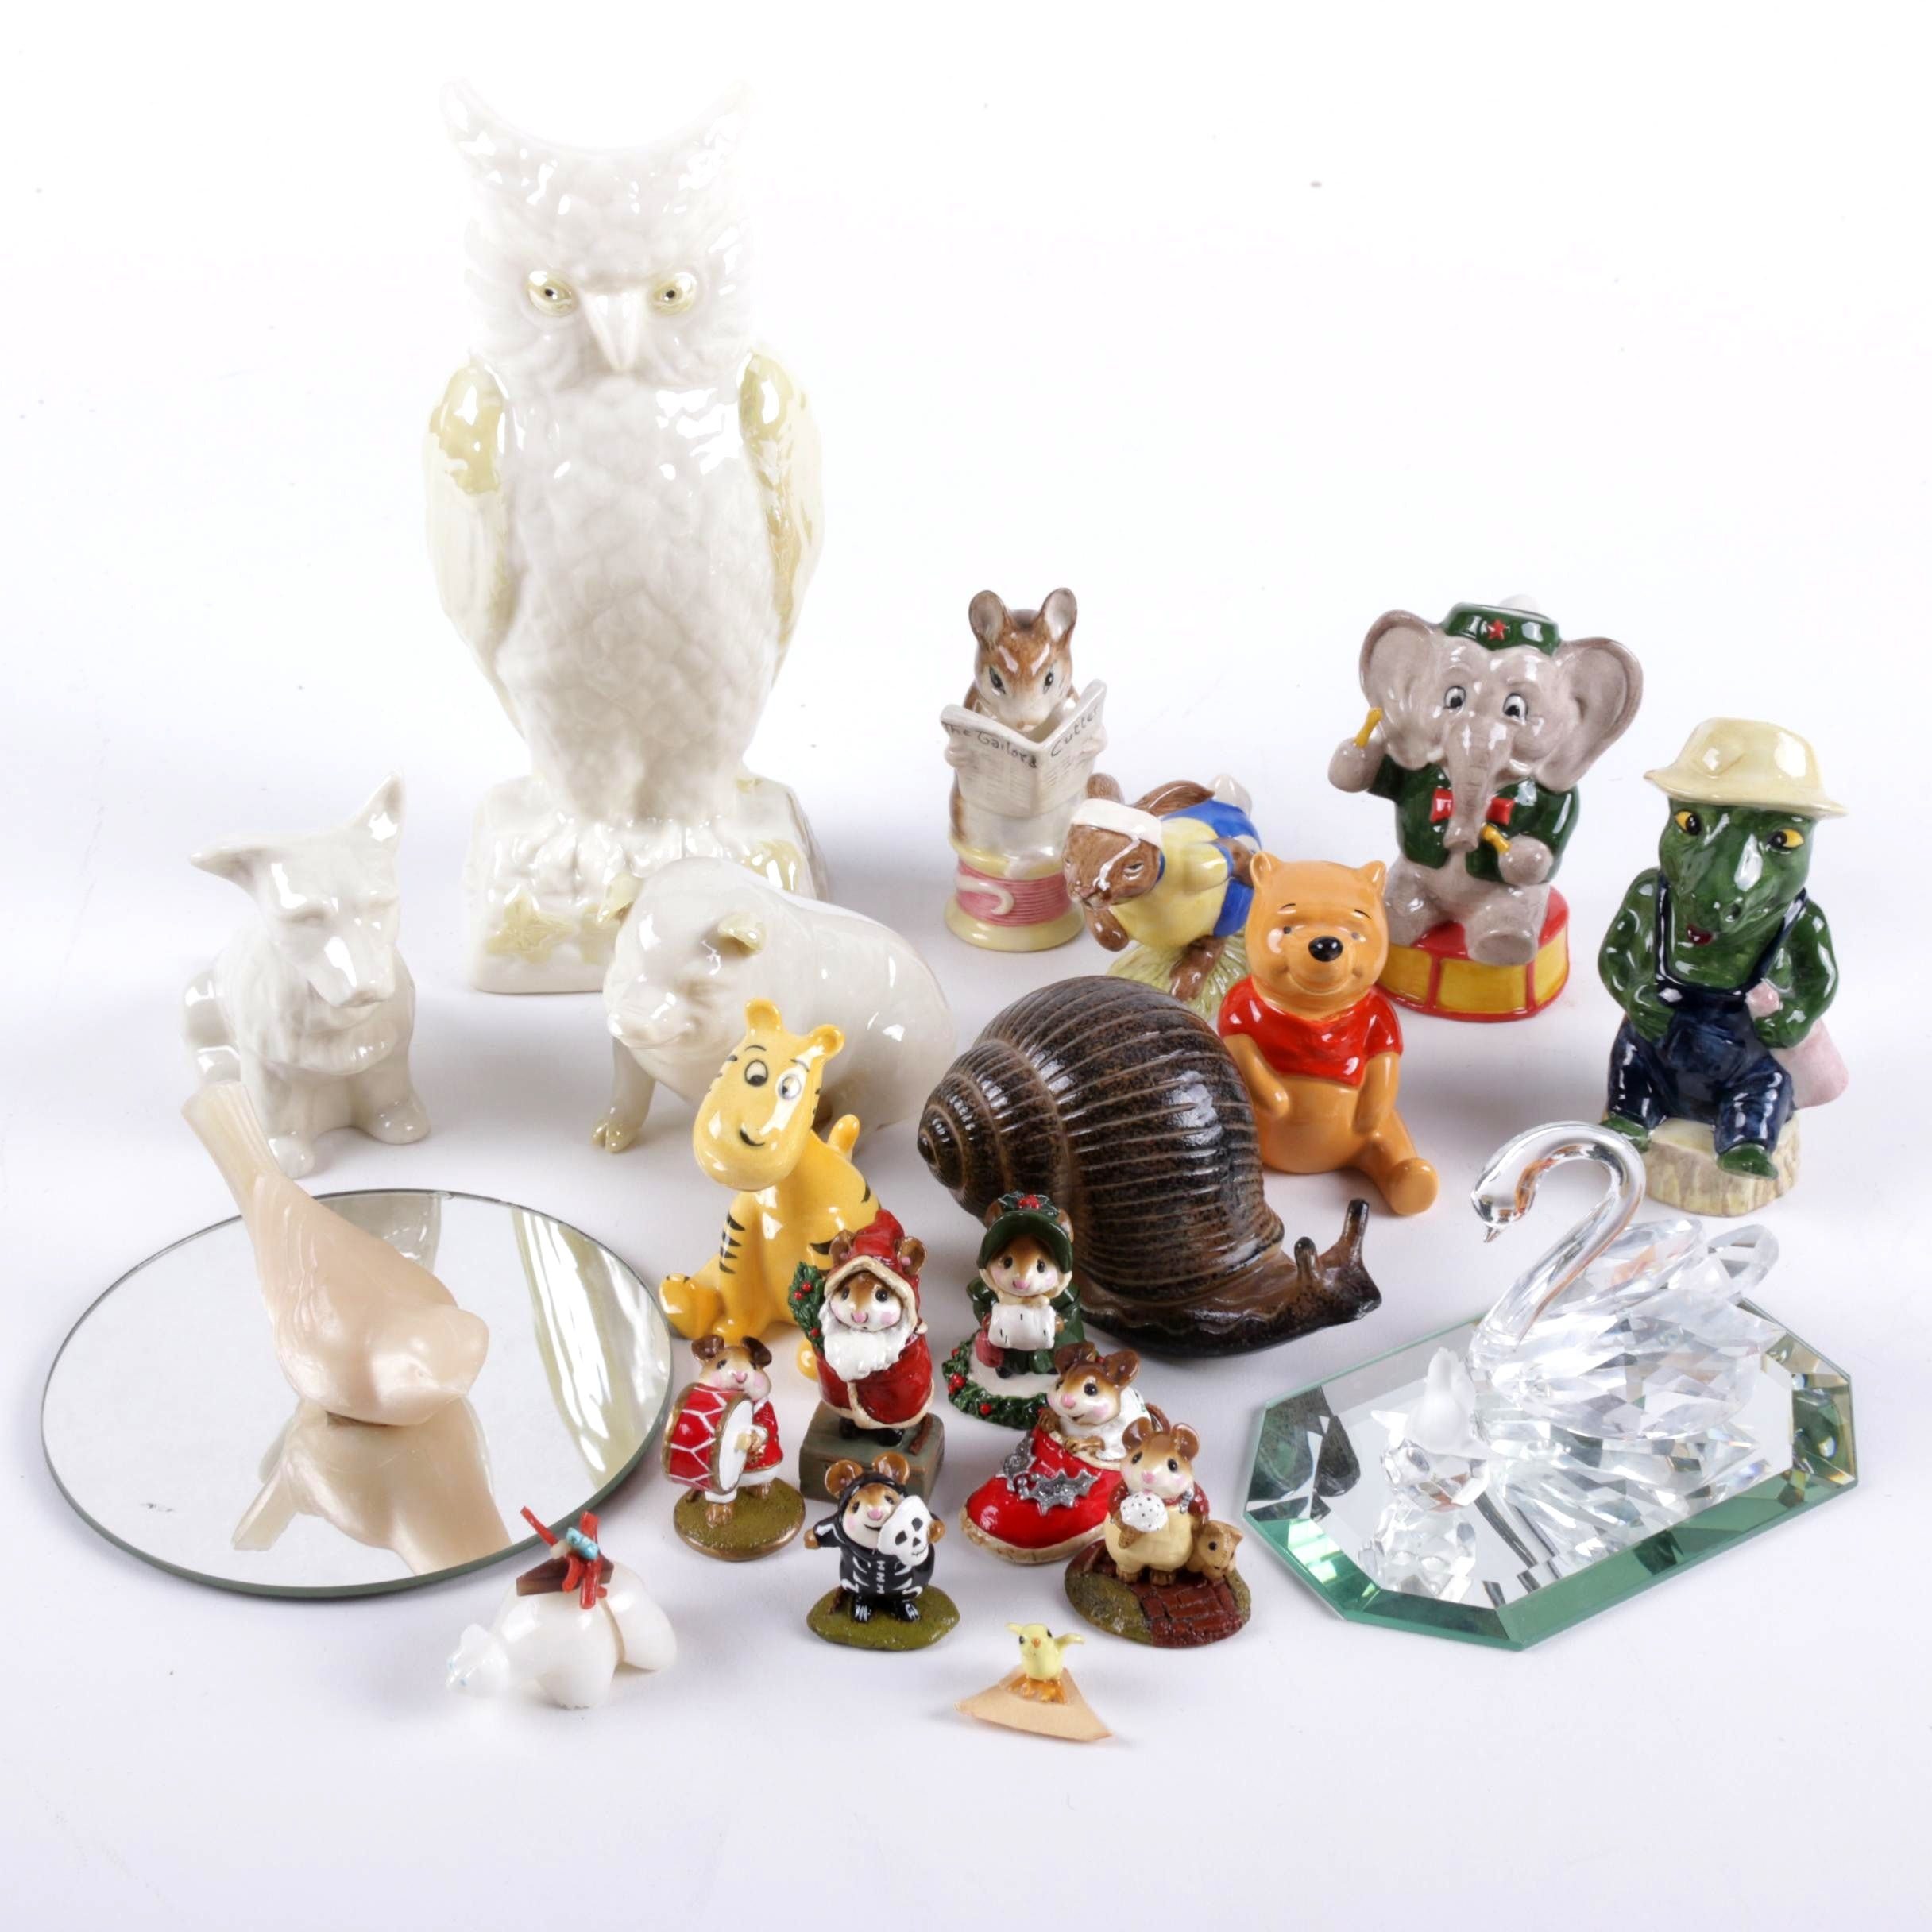 Disney, Belleek, and More Porcelain Figurines